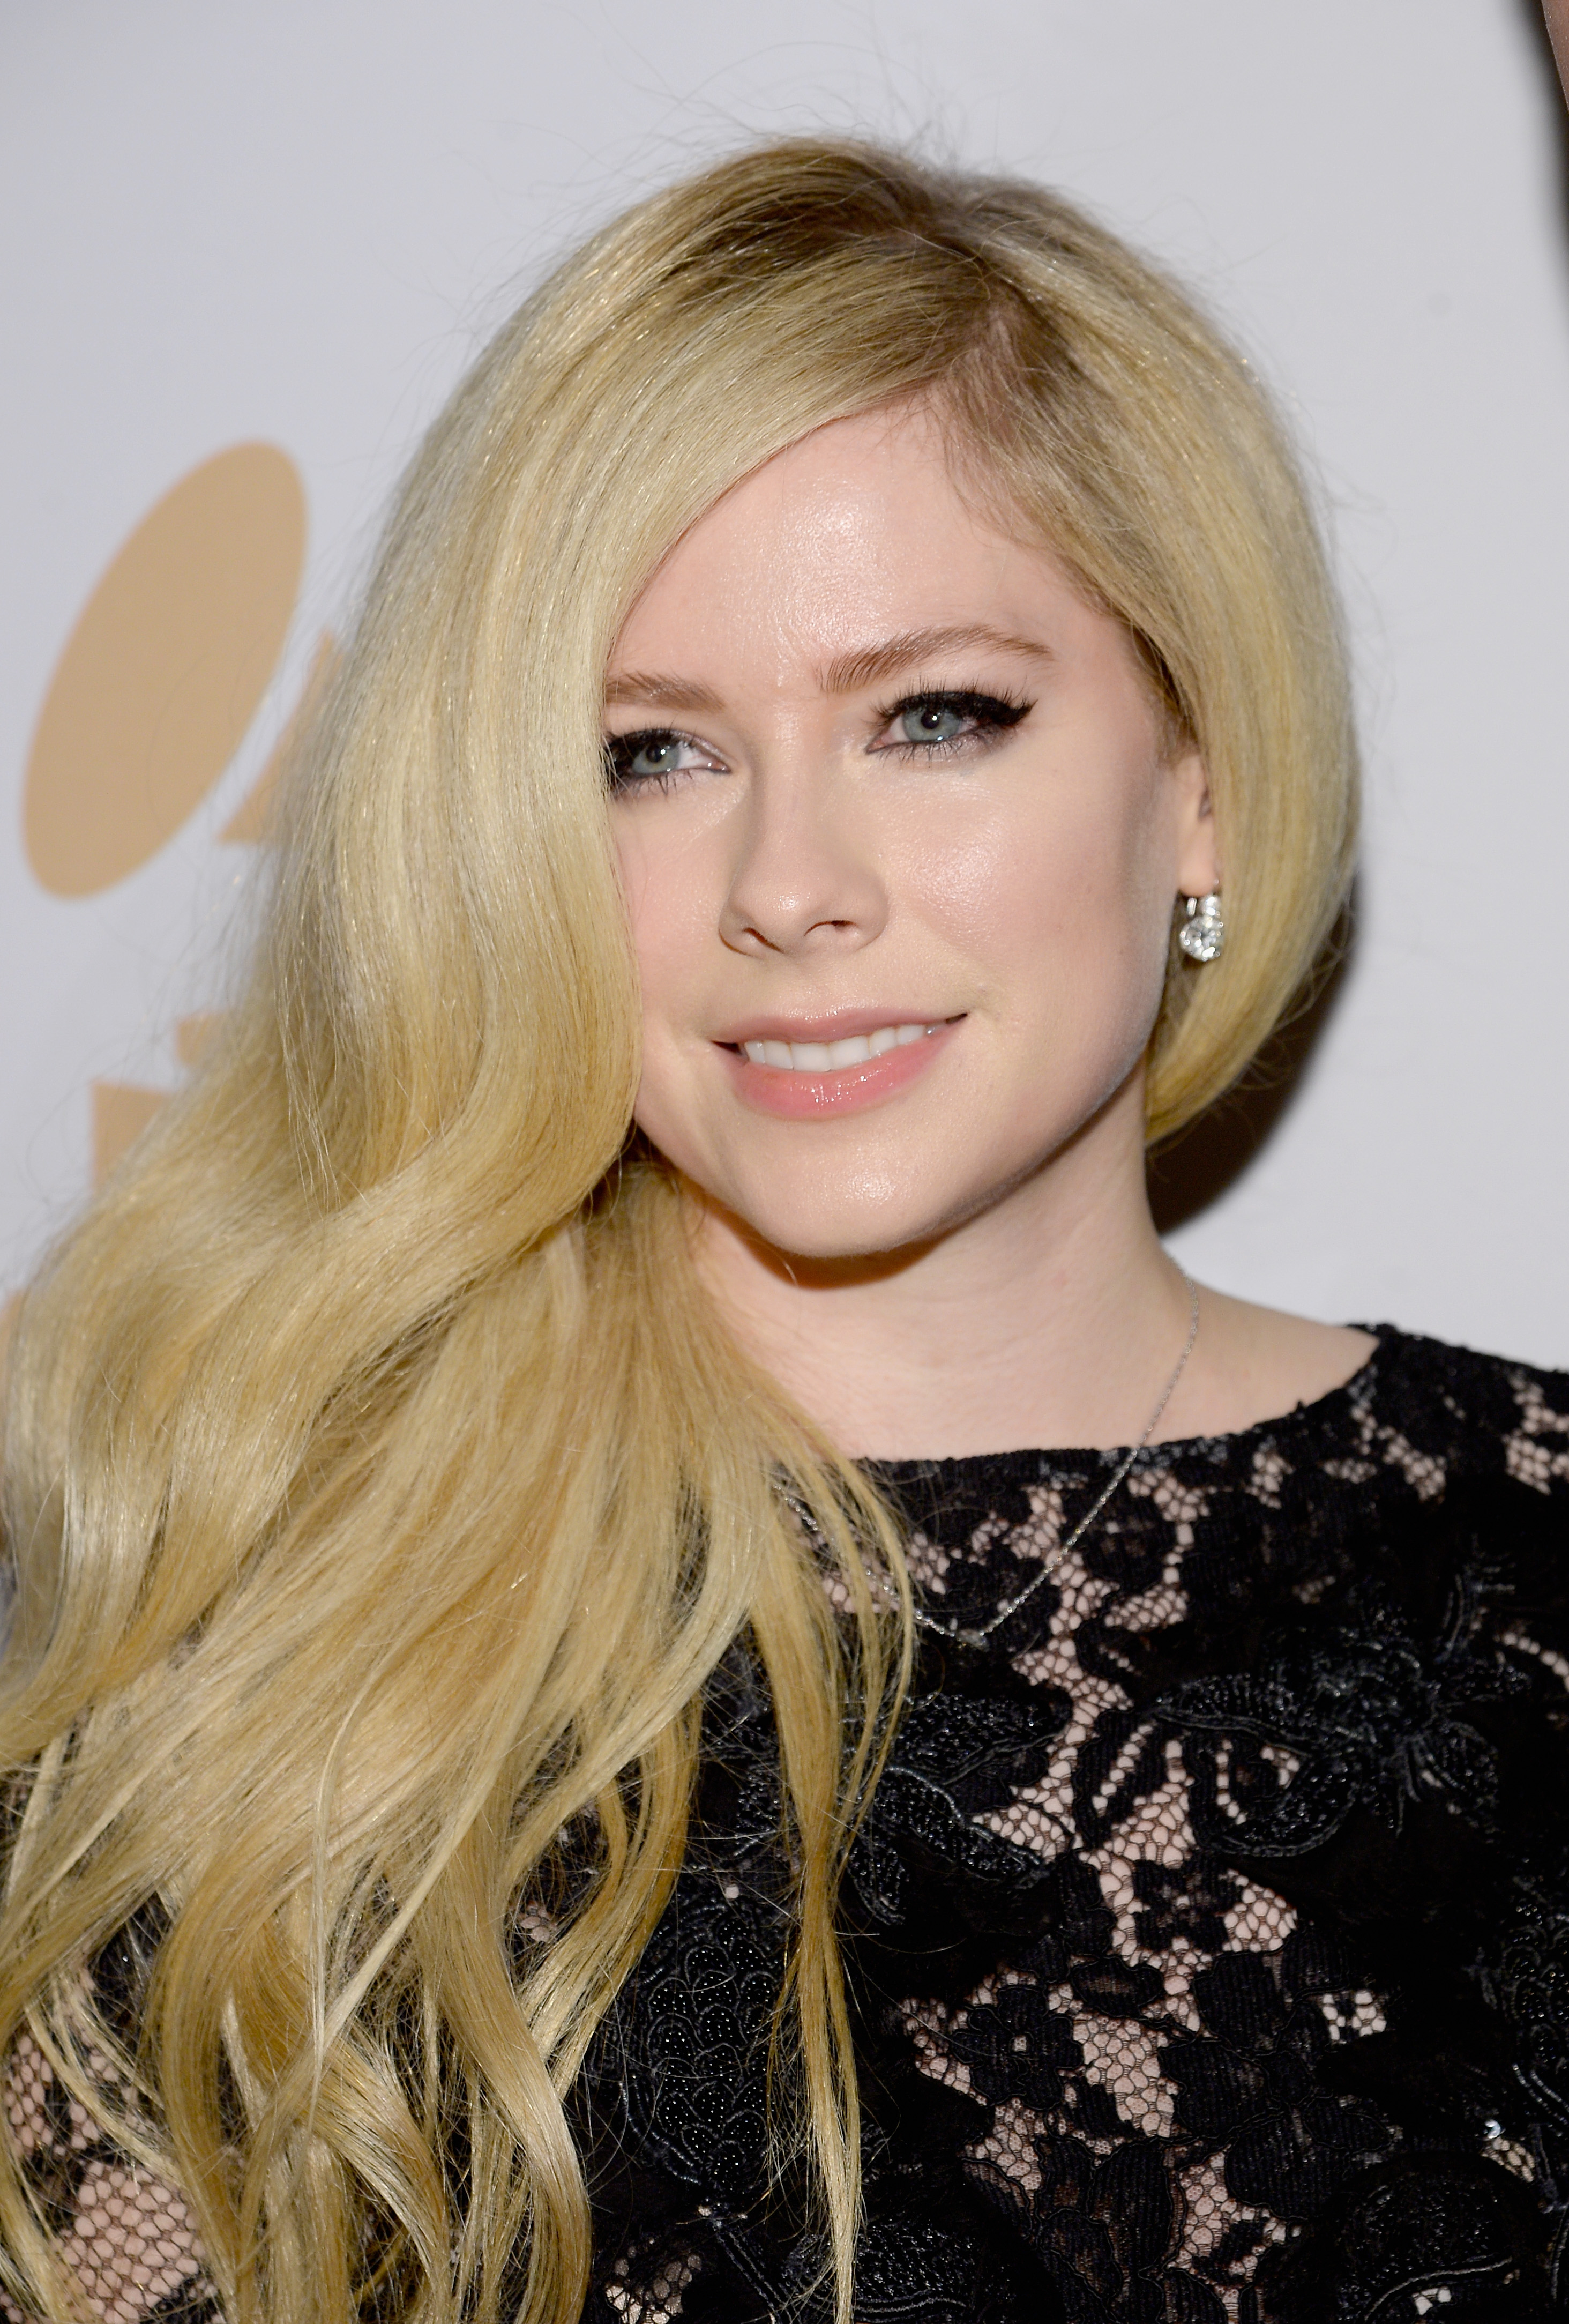 When Will Avril Lavigne Release A New Album? 'Complicated ... Avril Lavigne